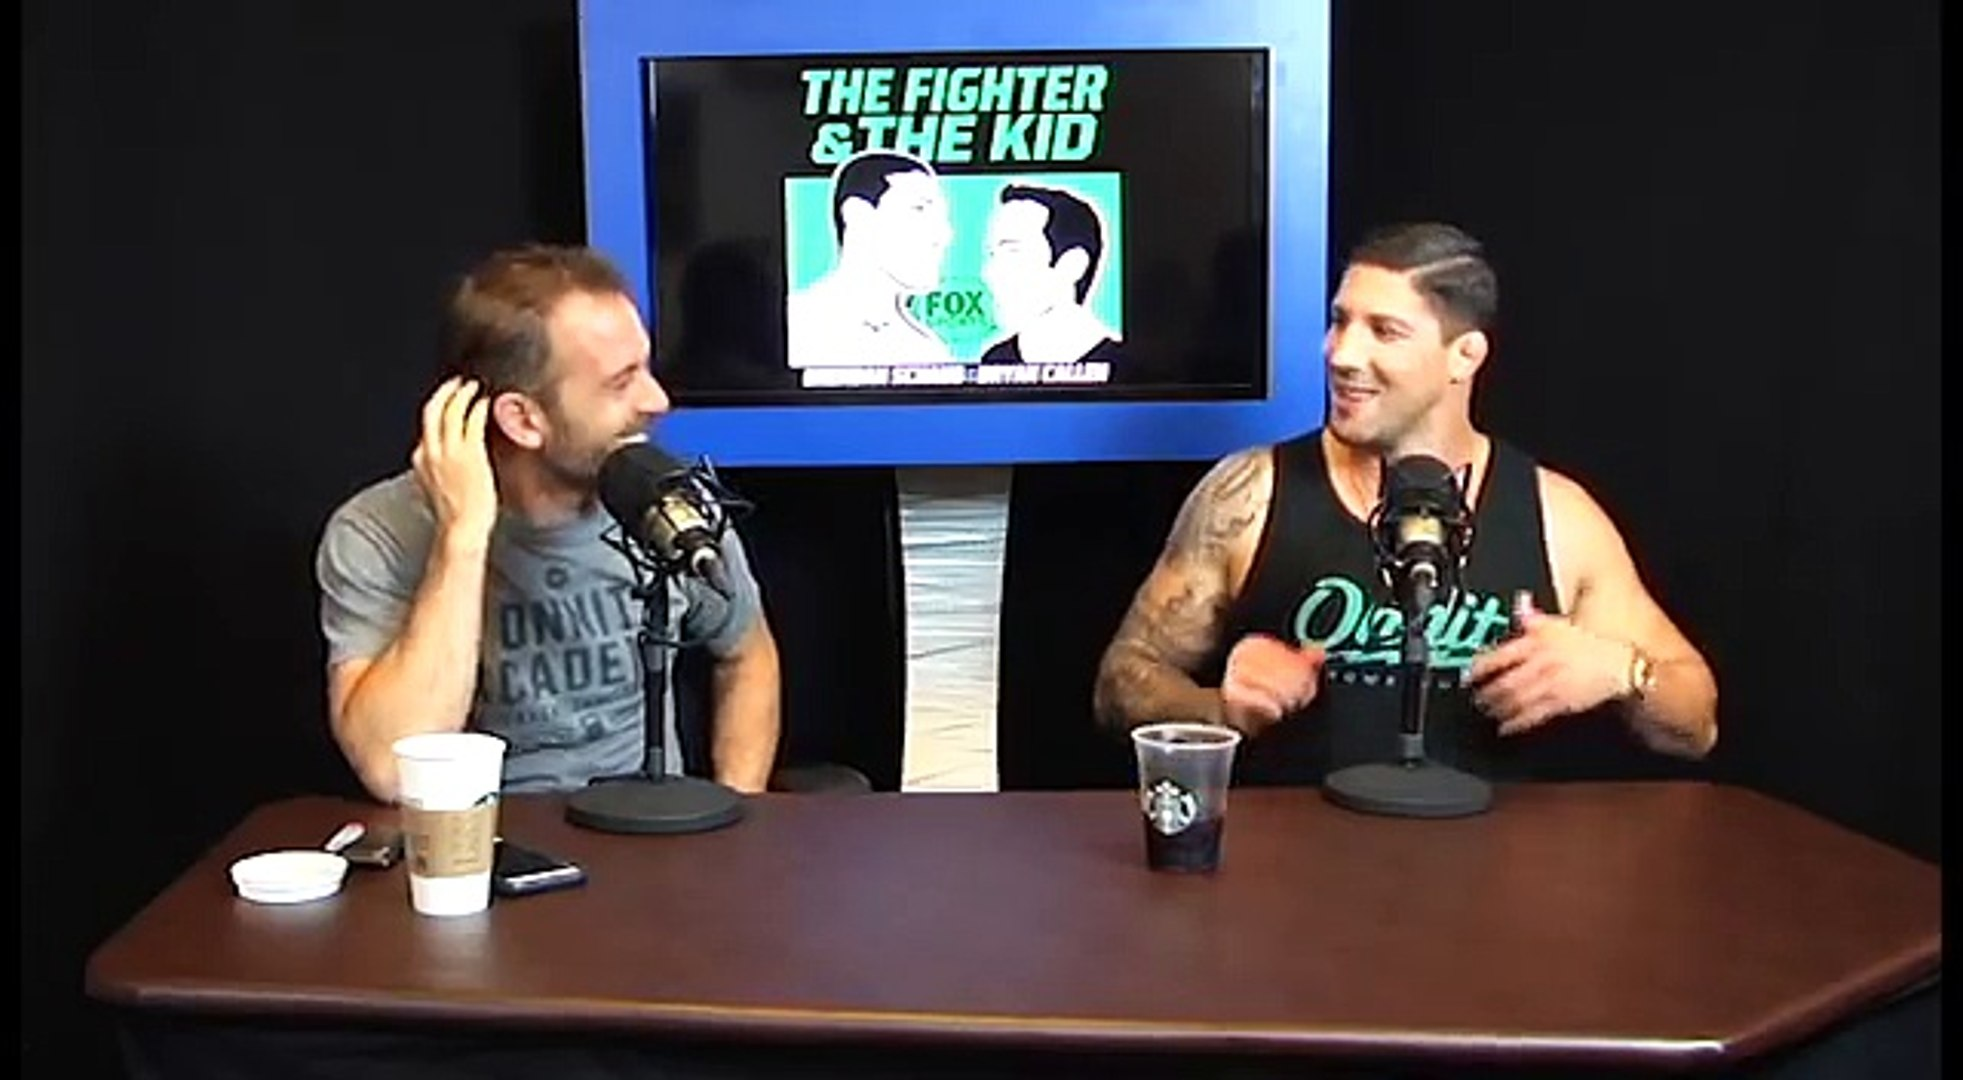 VIDEO HIGHLIGHTS Rob Dyrdek joins The Fighter and The Kid from The Fighter & The Kid on po